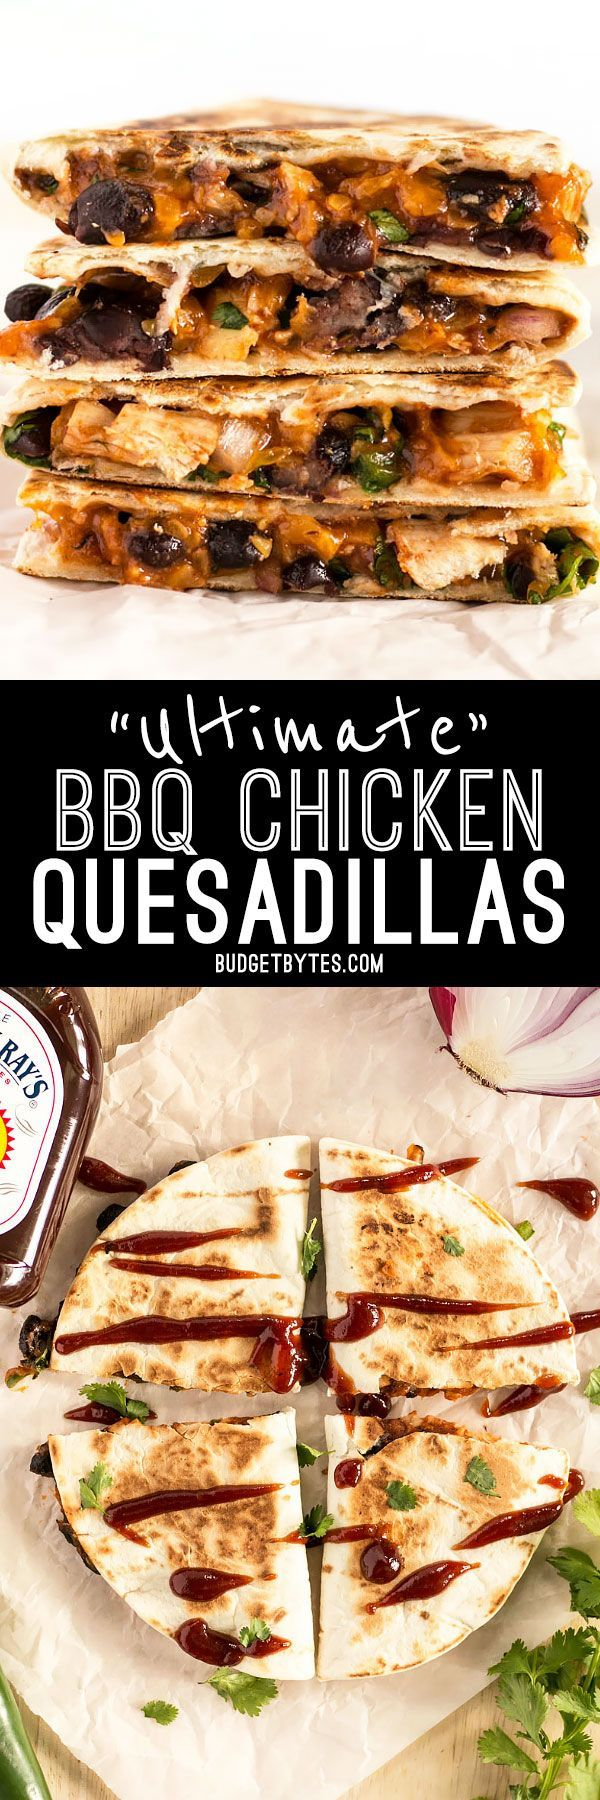 These Ultimate BBQ Chicken Quesadillas are packed with colorful ingredients and deliciously tangy Sweet Baby Ray's BBQ sauce!